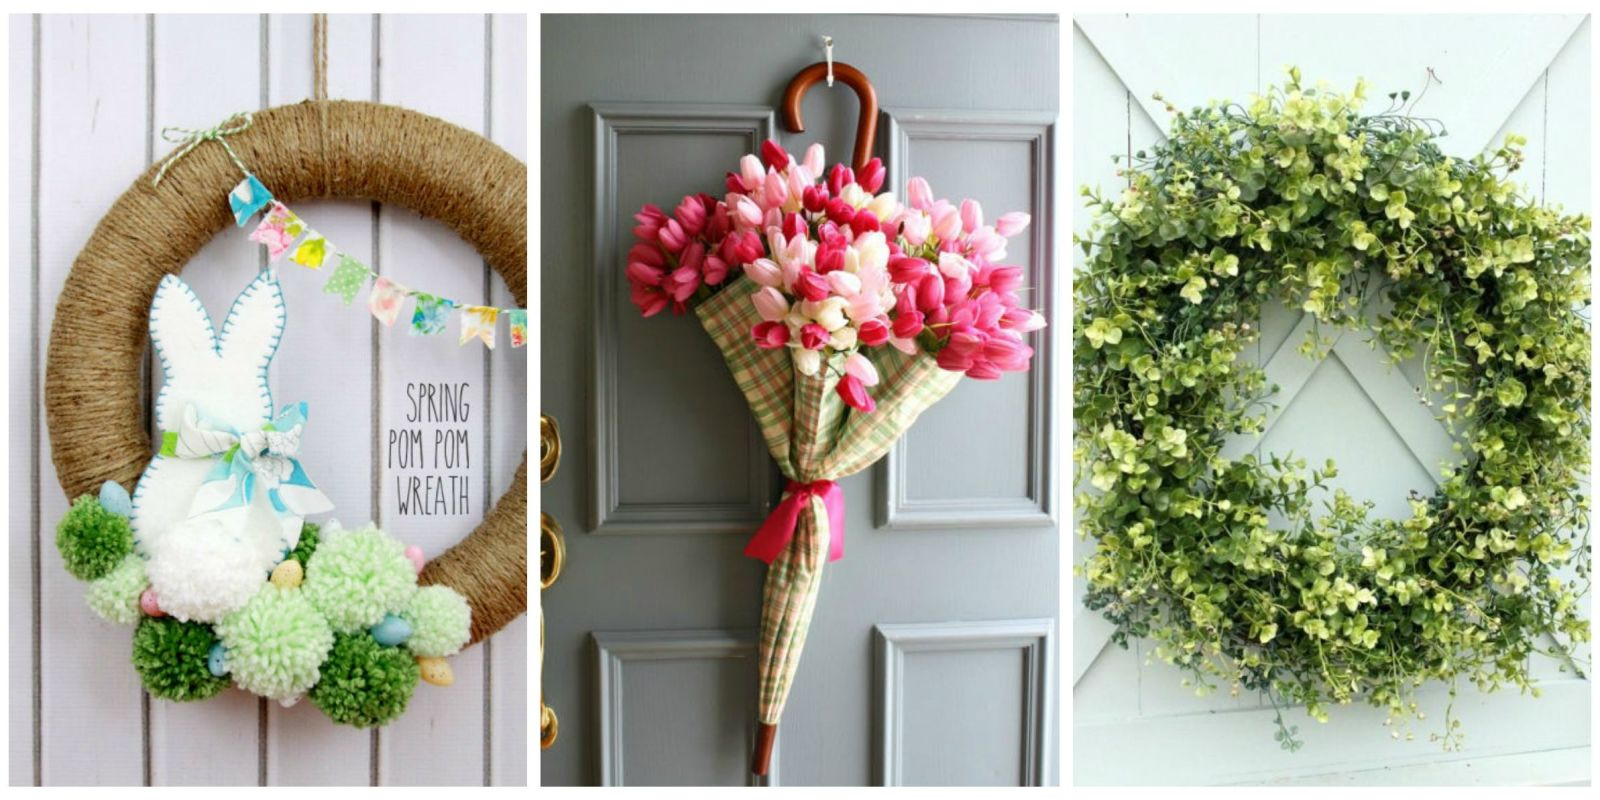 Amazing Amazing DIY Wreaths To Dress Up Your Door This Spring